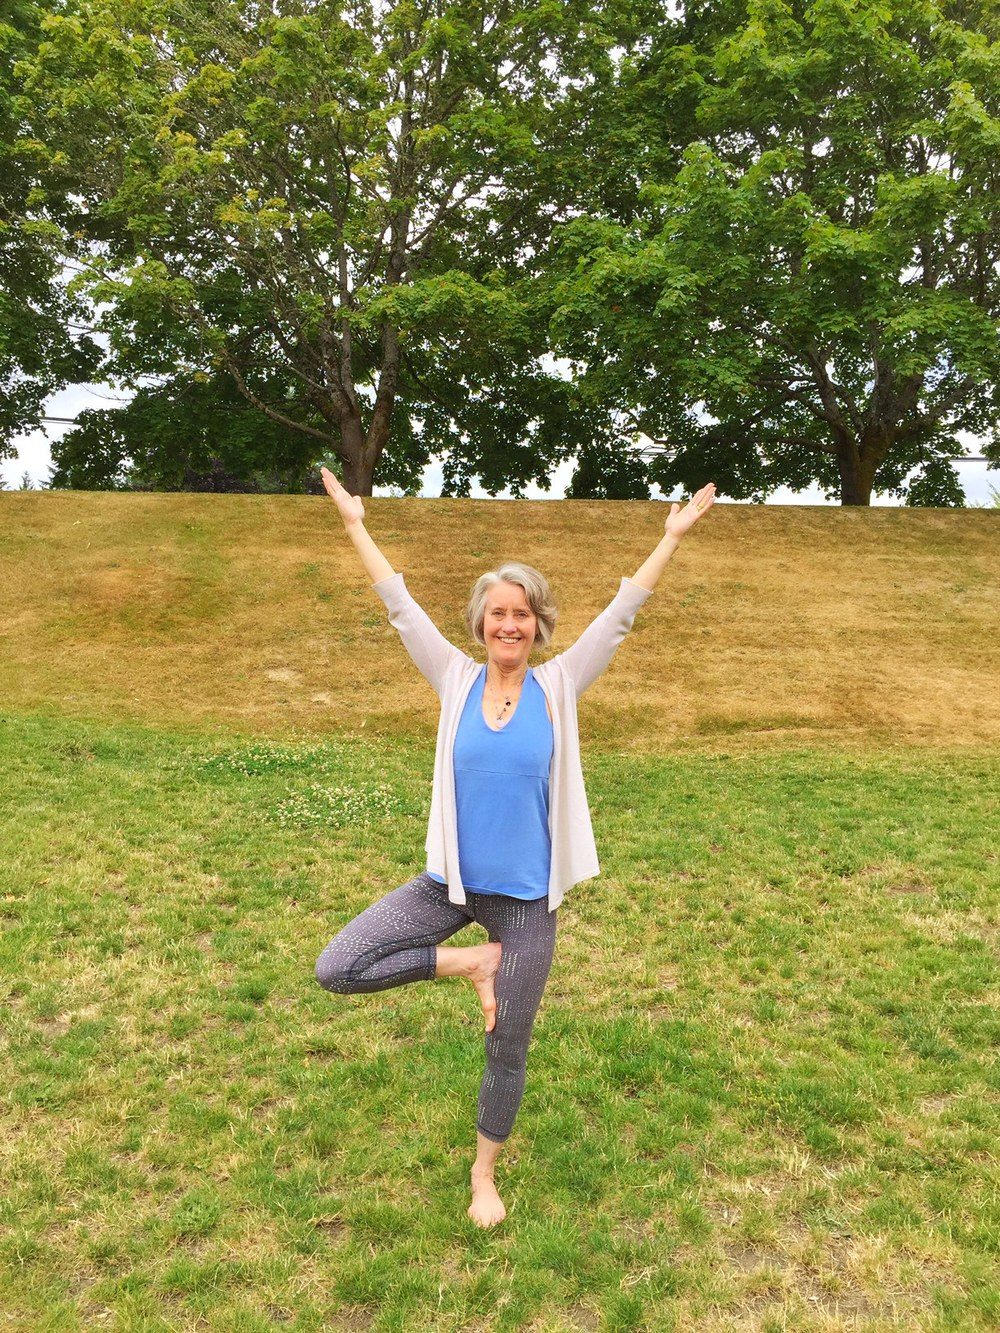 Tree pose has always been one of my favorite poses, and this time of year it feels especially fantastic to do it outside. Try it – there's nothing like it to help you feel grounded and connected to the earth.